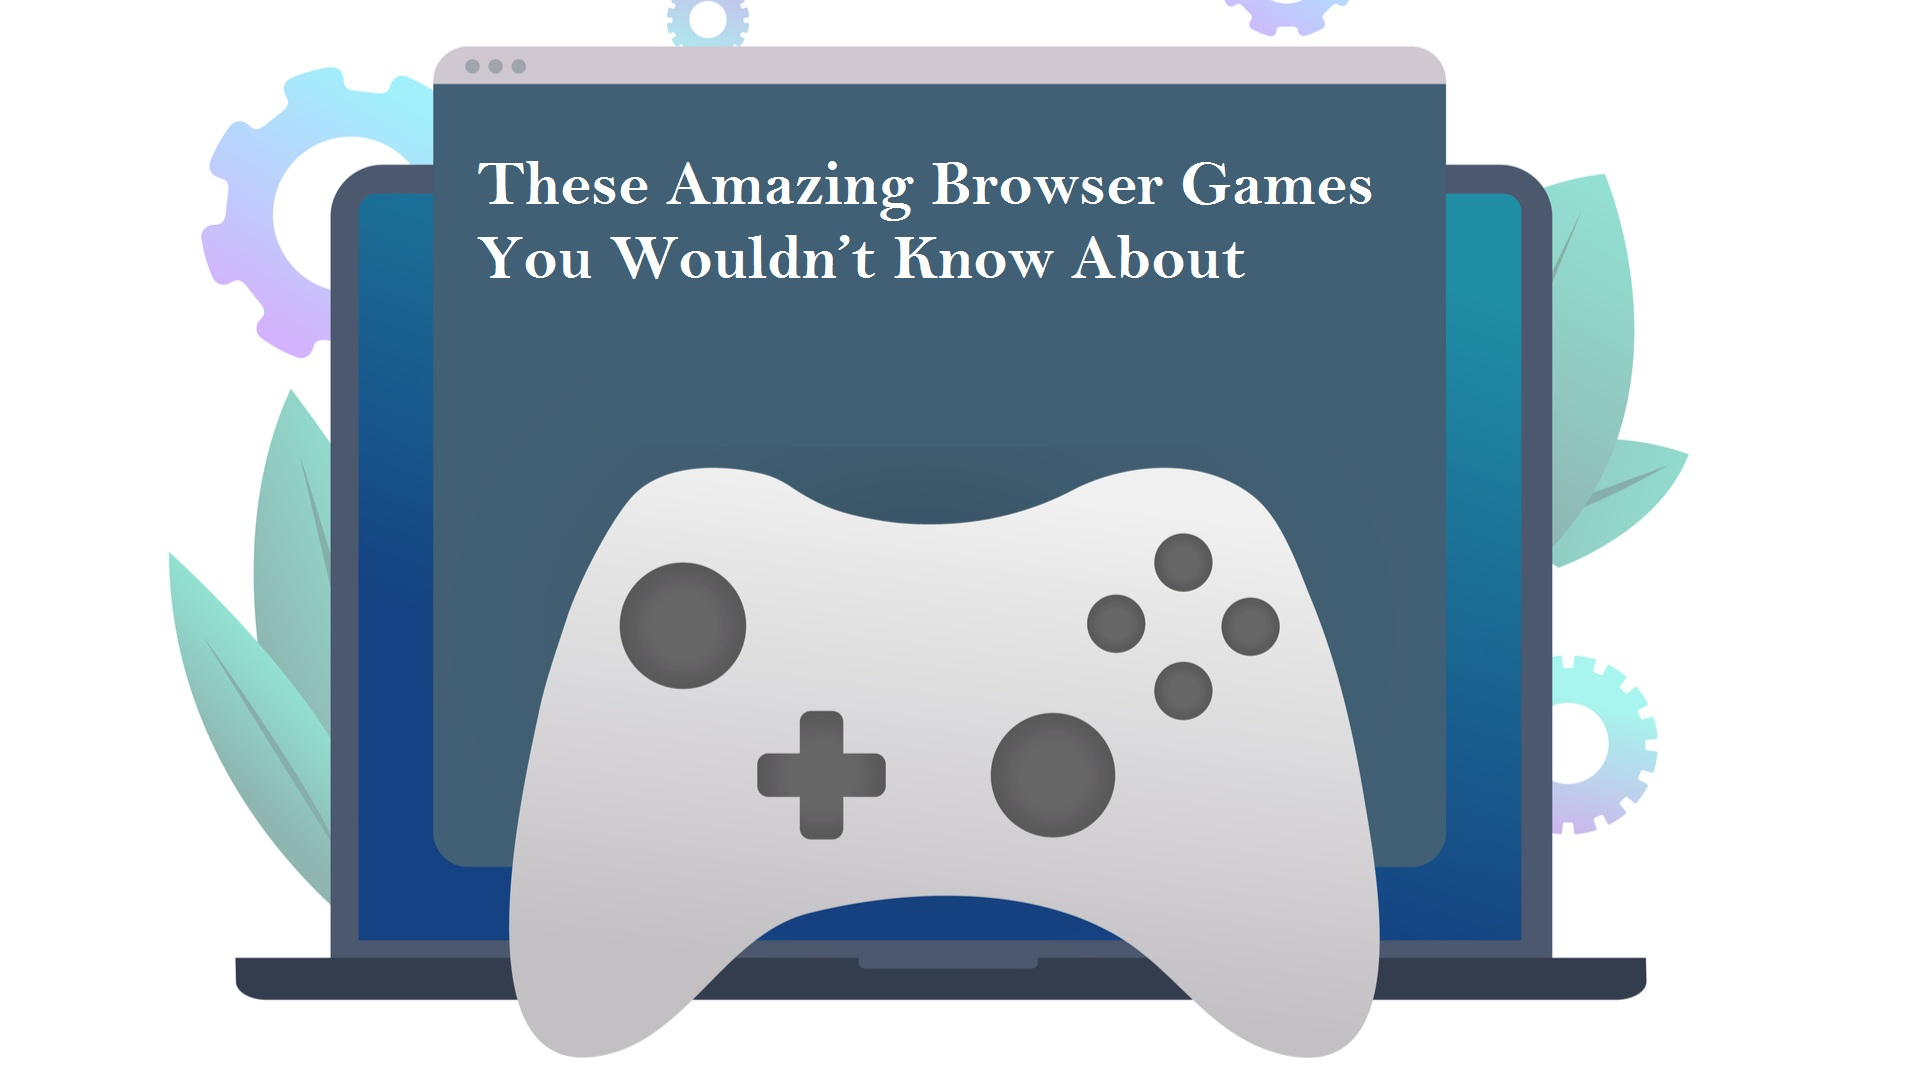 These Amazing Browser Games You Wouldn't Know About